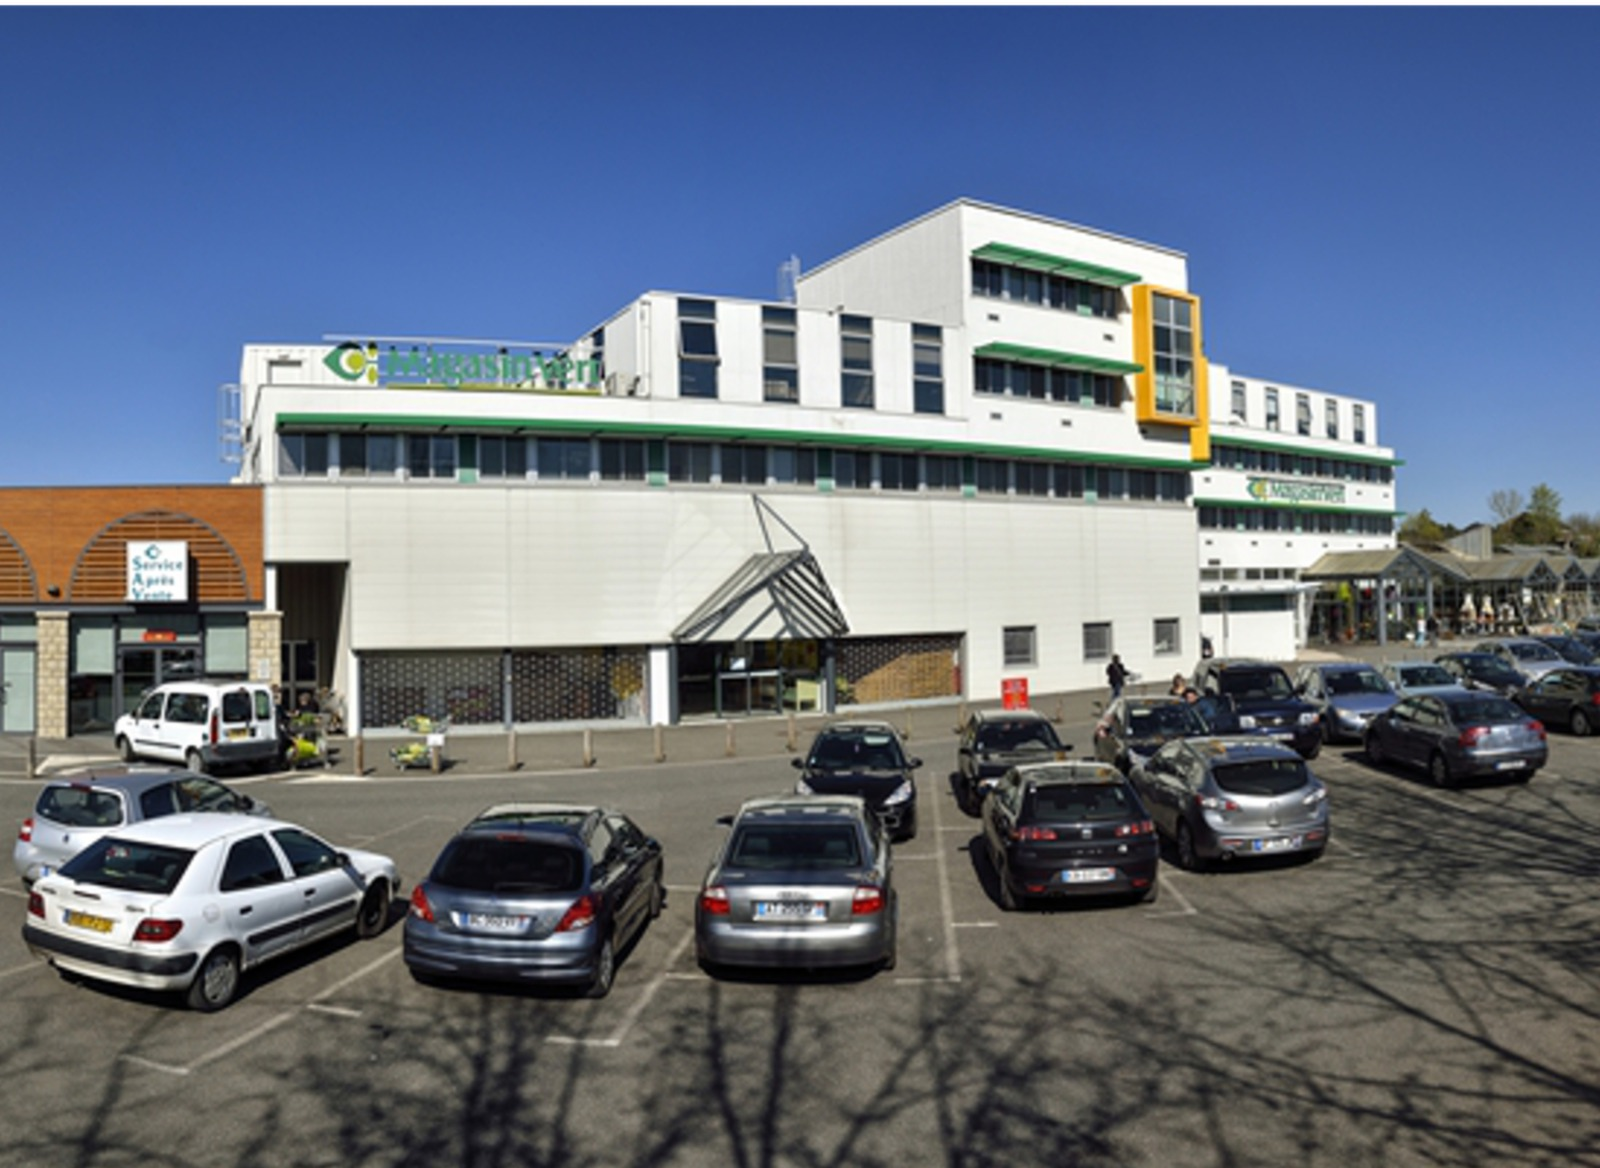 MAGASIN VERT ONET LE CHATEAU